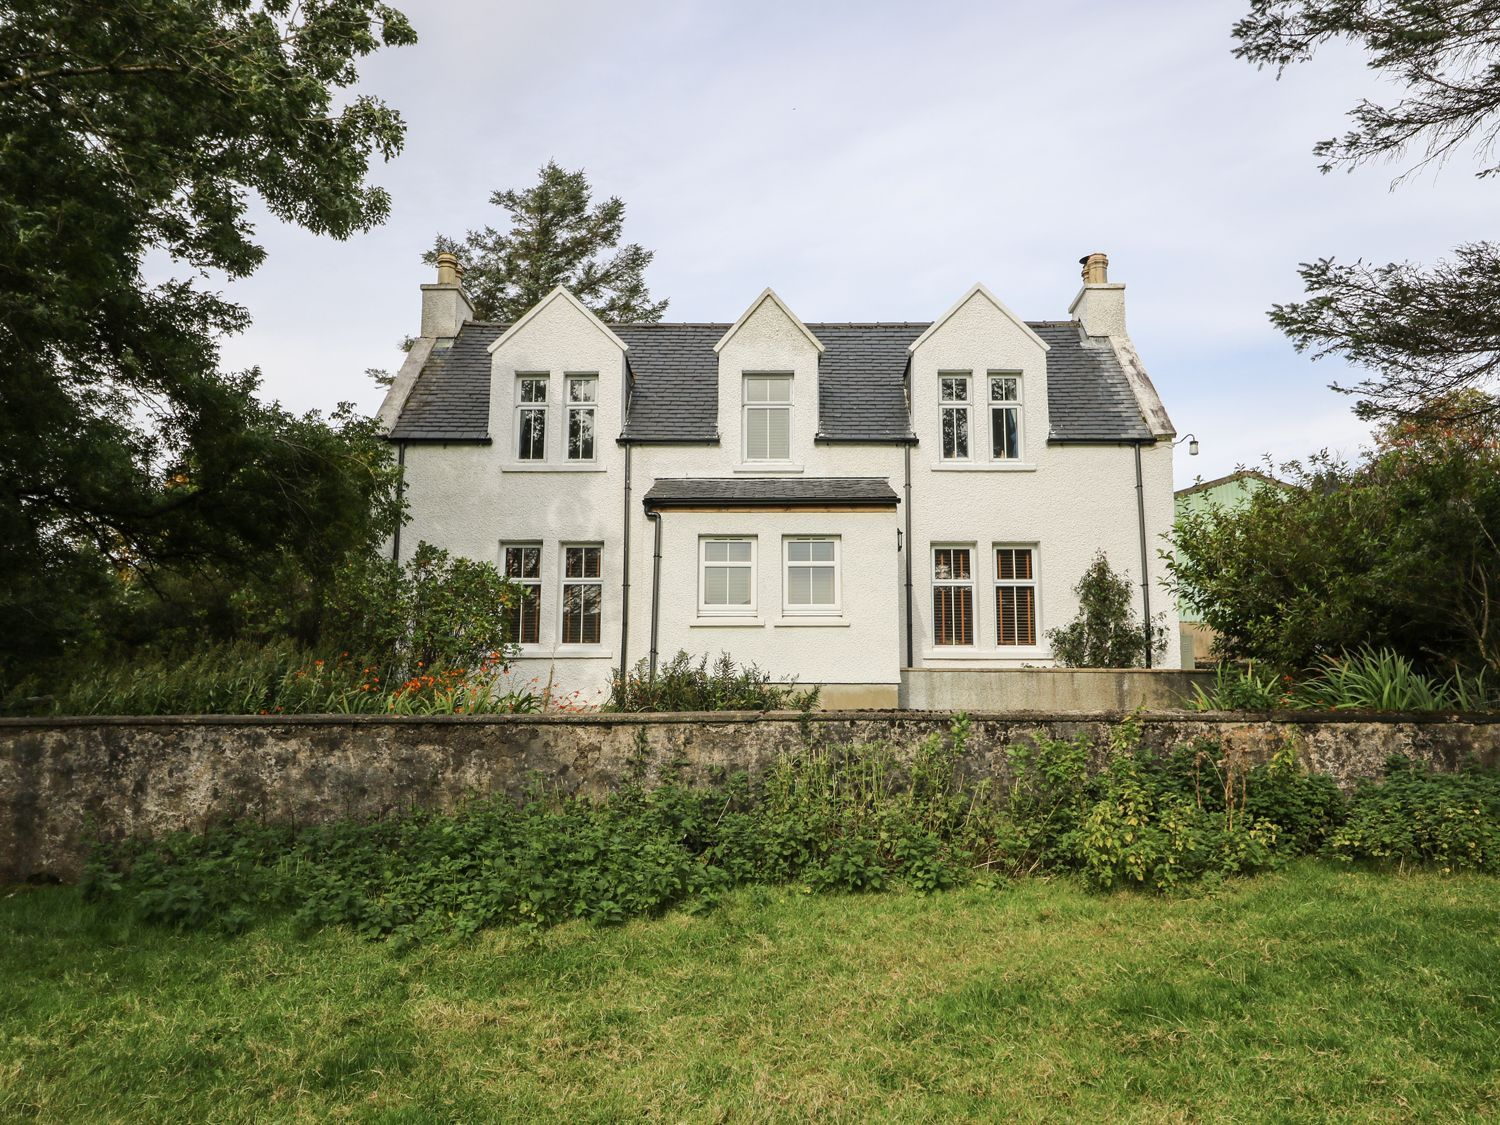 Sleeps 5 Bedrooms 3 Bathrooms 2 Pet Free Sleeping Up To Five People In Three Bedrooms This Cottage Is Holiday Cottages To Rent Cottages Scotland Rent Cottage